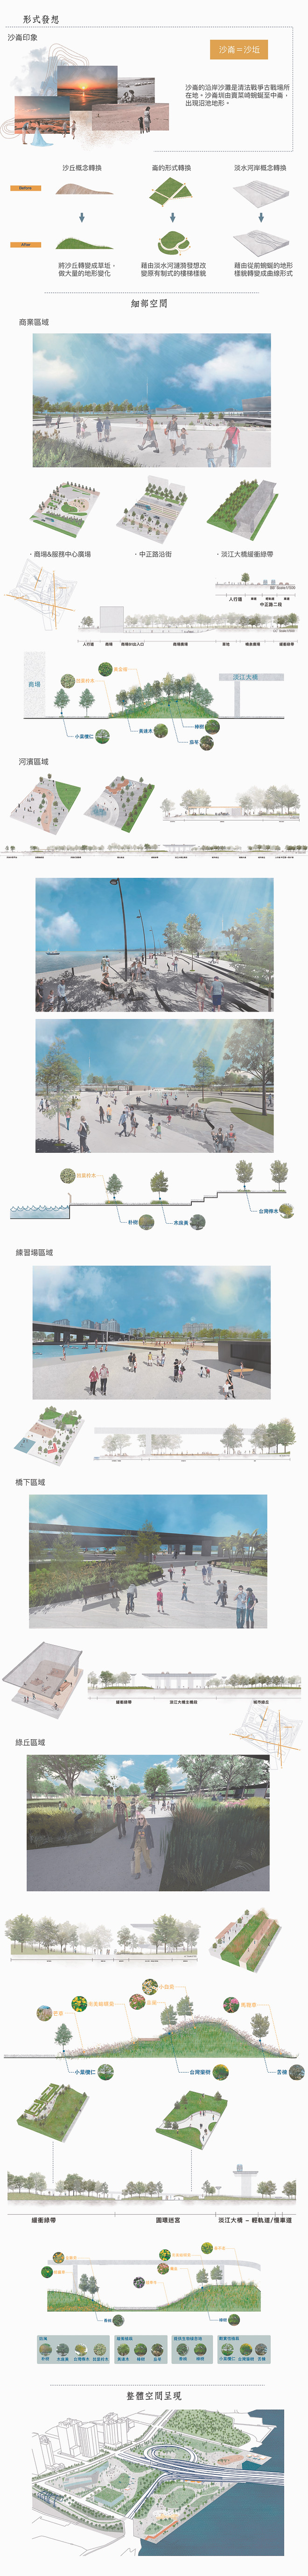 AFTER 2024 TAMSUI-作品內容02.jpg